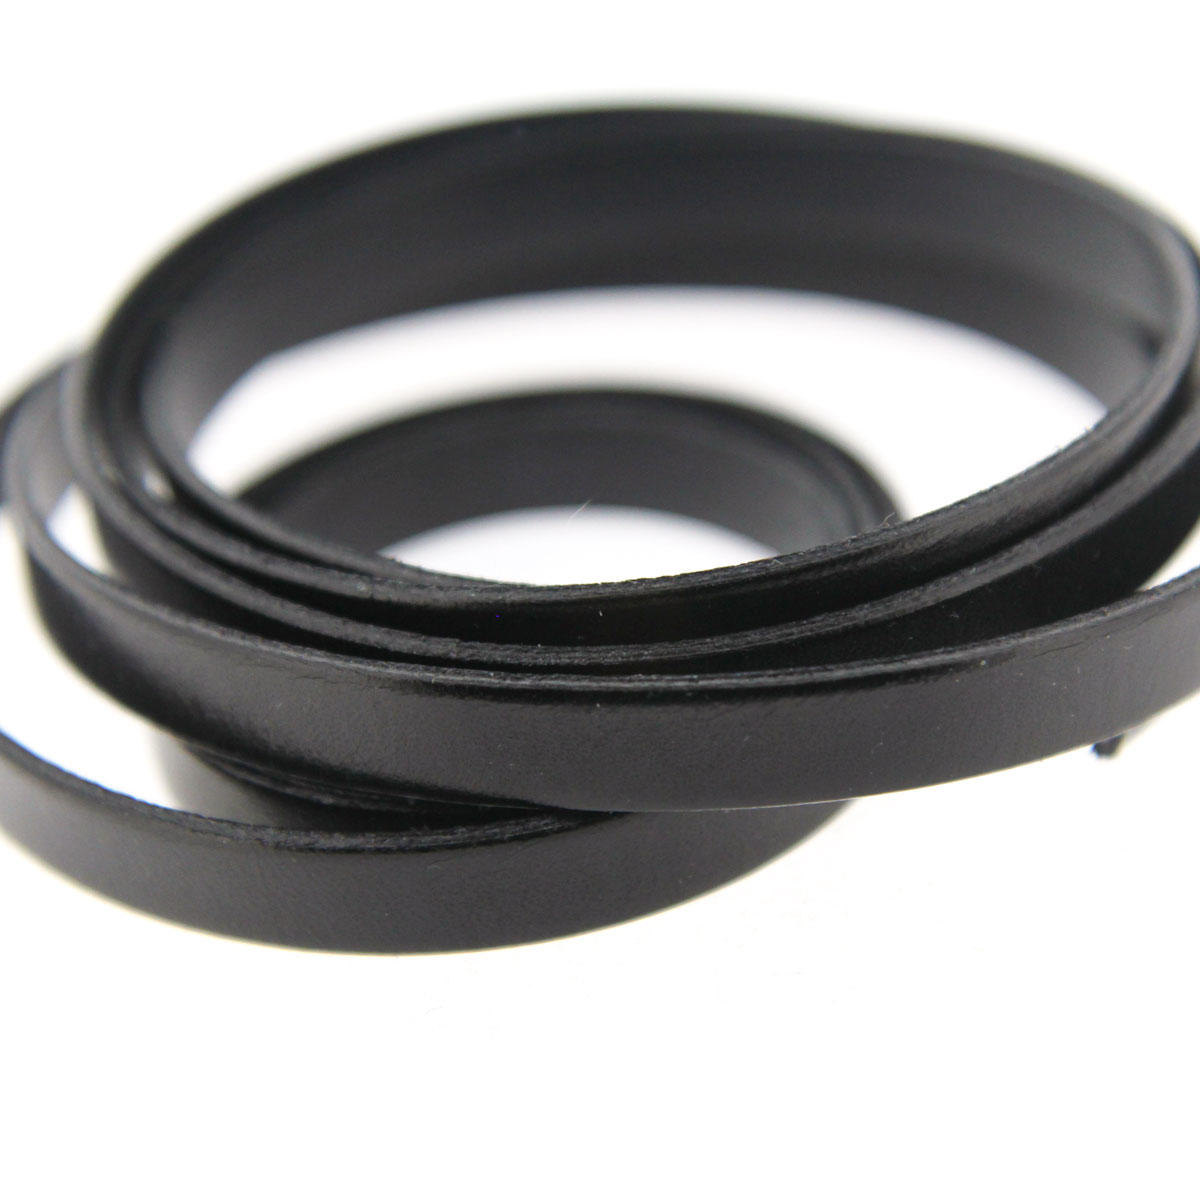 Black 10mm Flat Leather